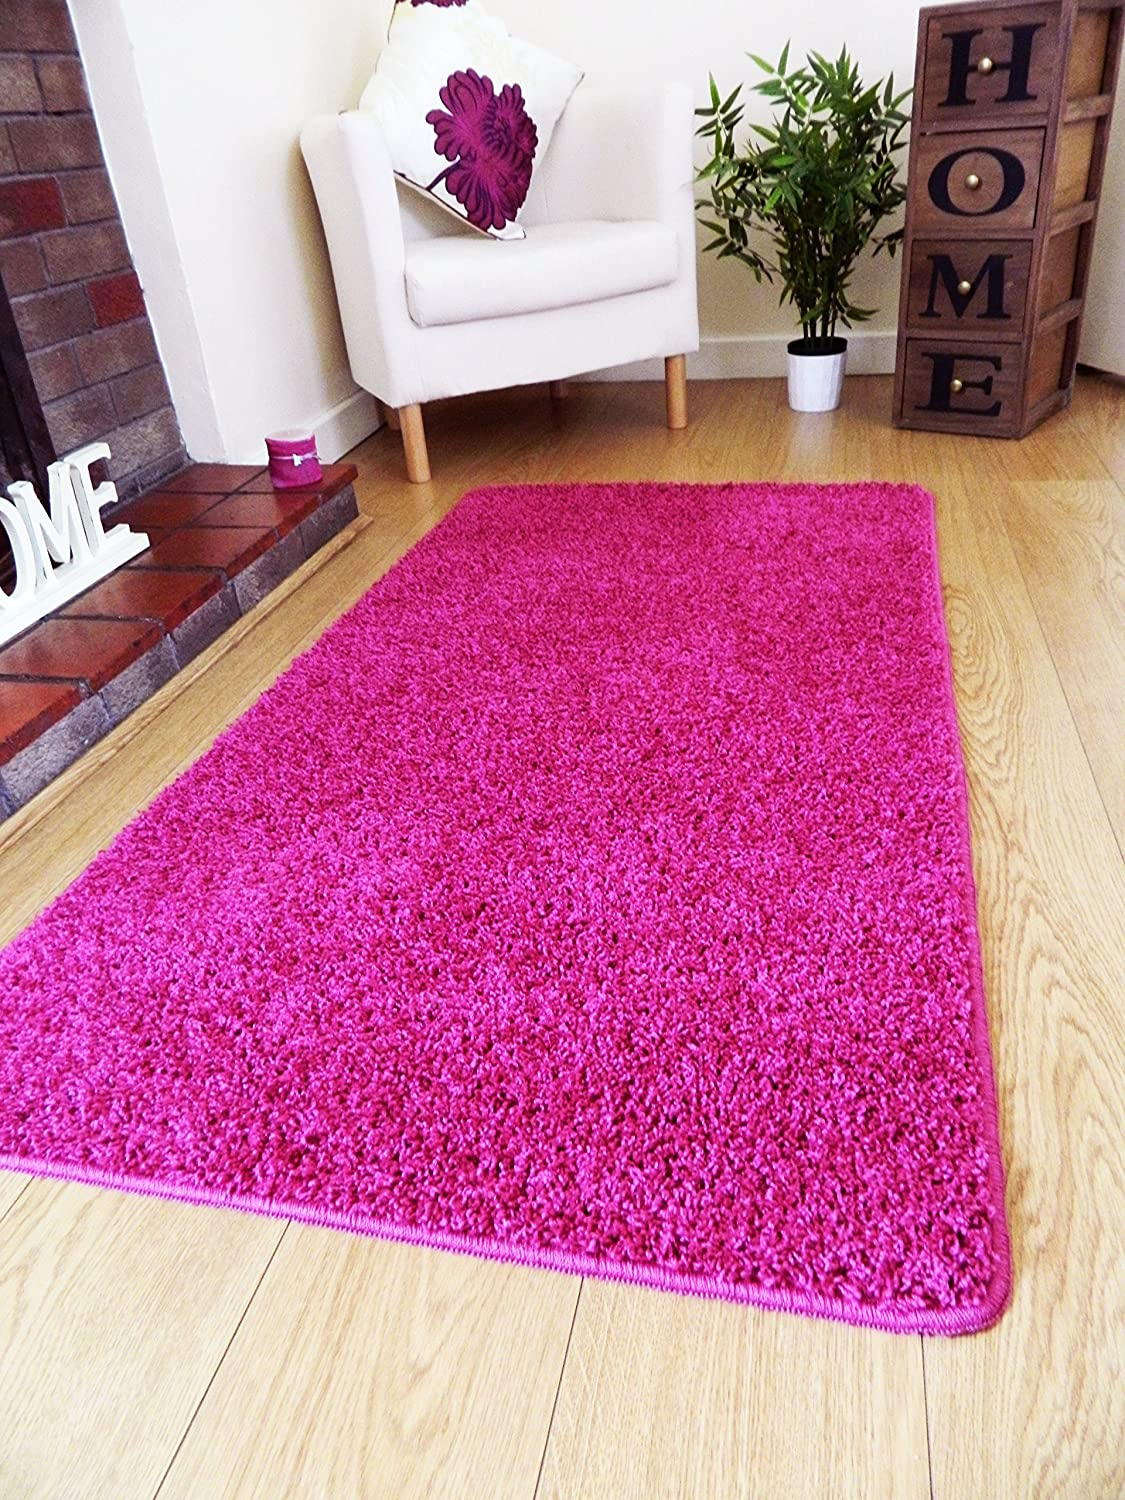 home new bedroom area rugs soft for living room floor mats depot at the